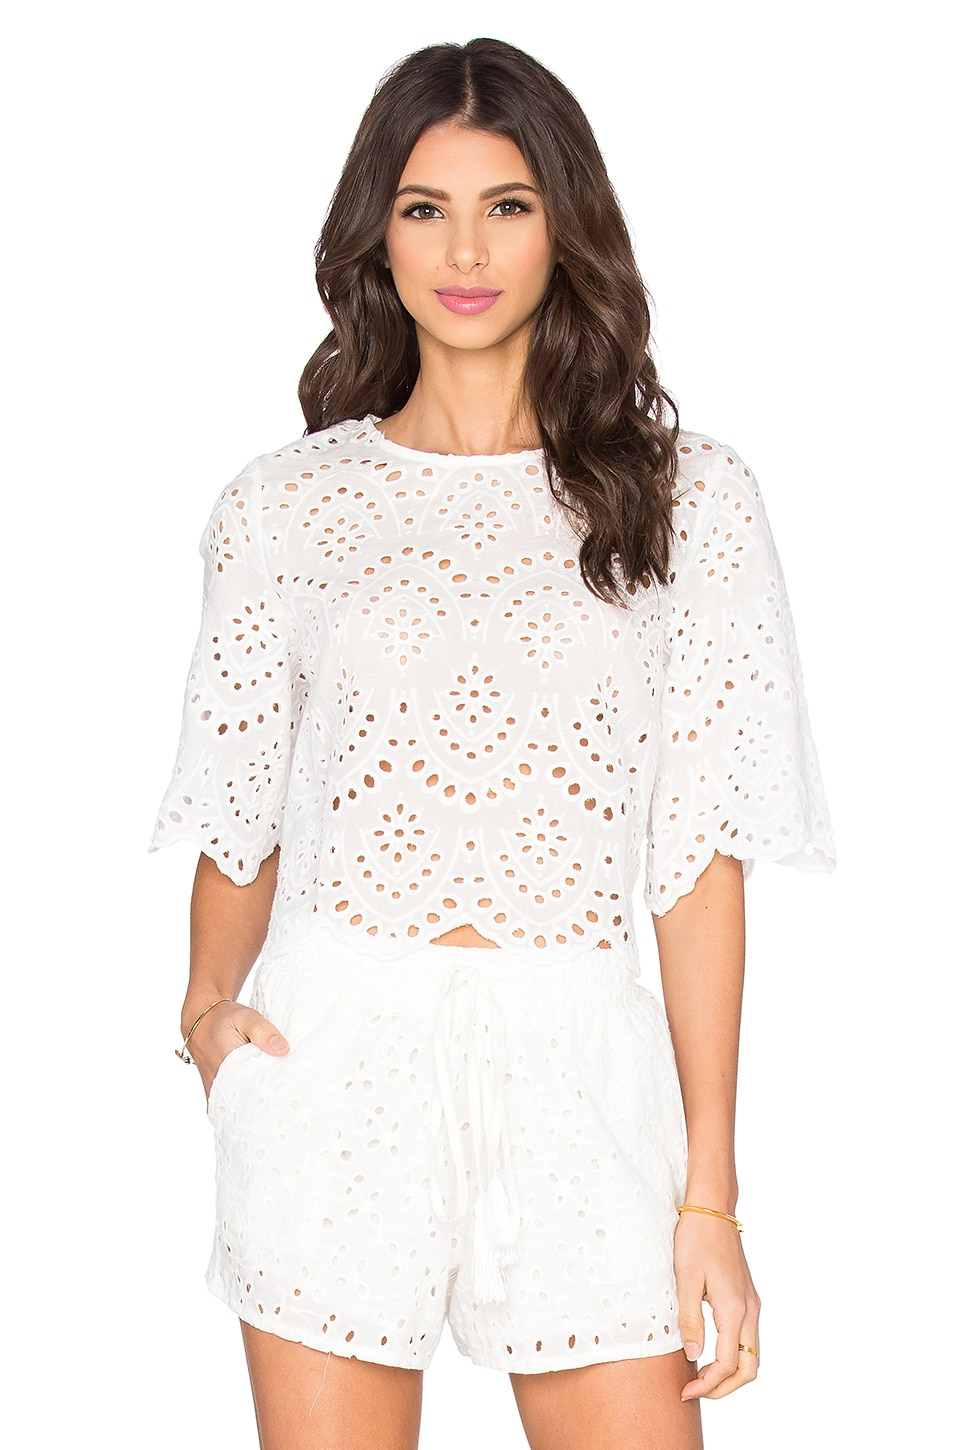 Bishop + Young Margaux Eyelet Crop Top in White